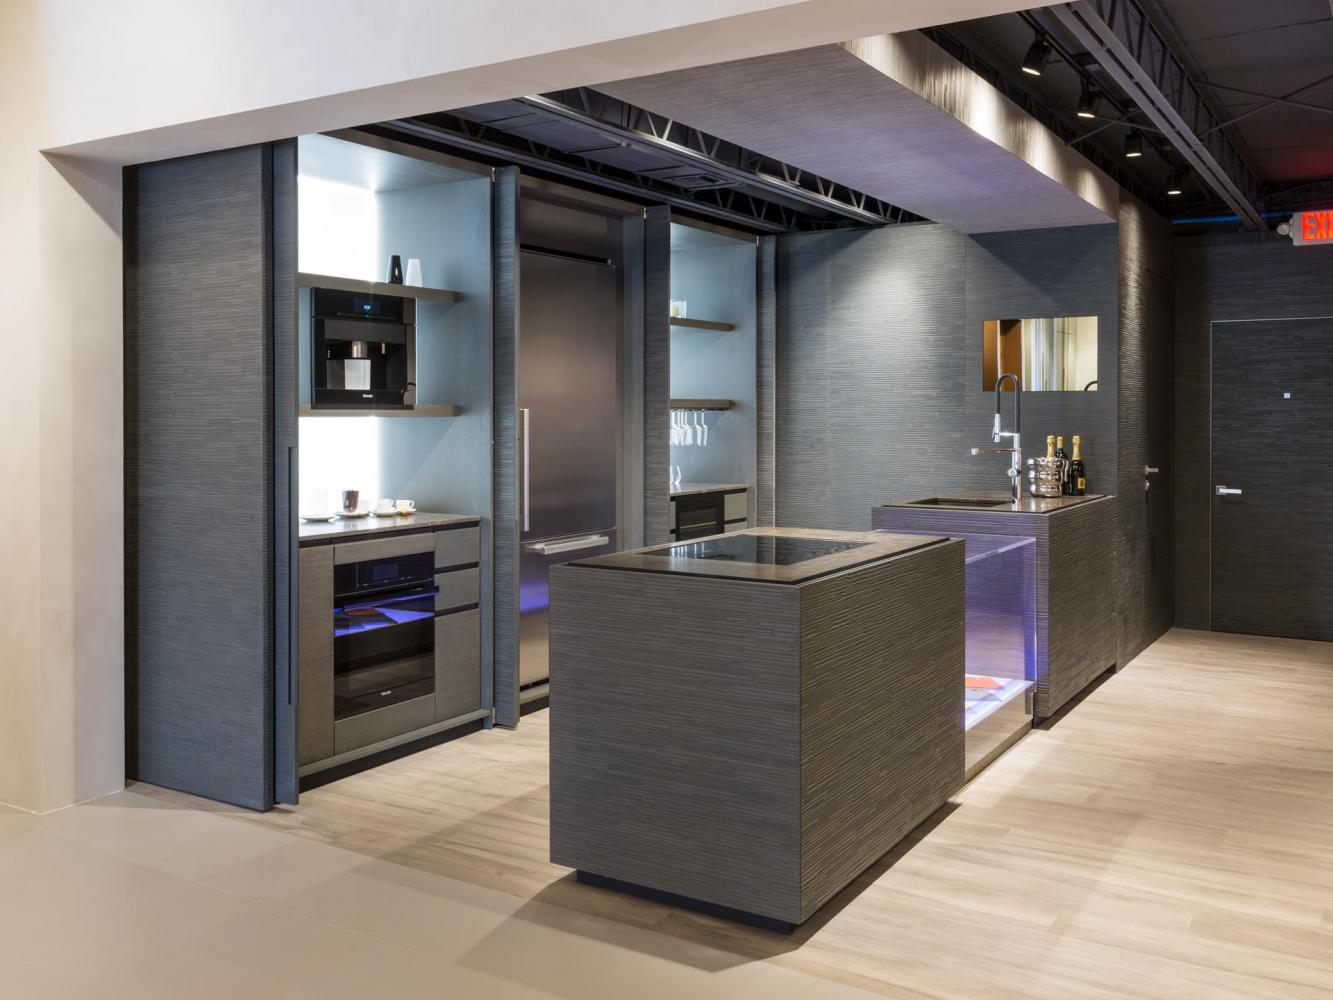 laurameroni bellagio bespoke kitchen in aniline dyed wood